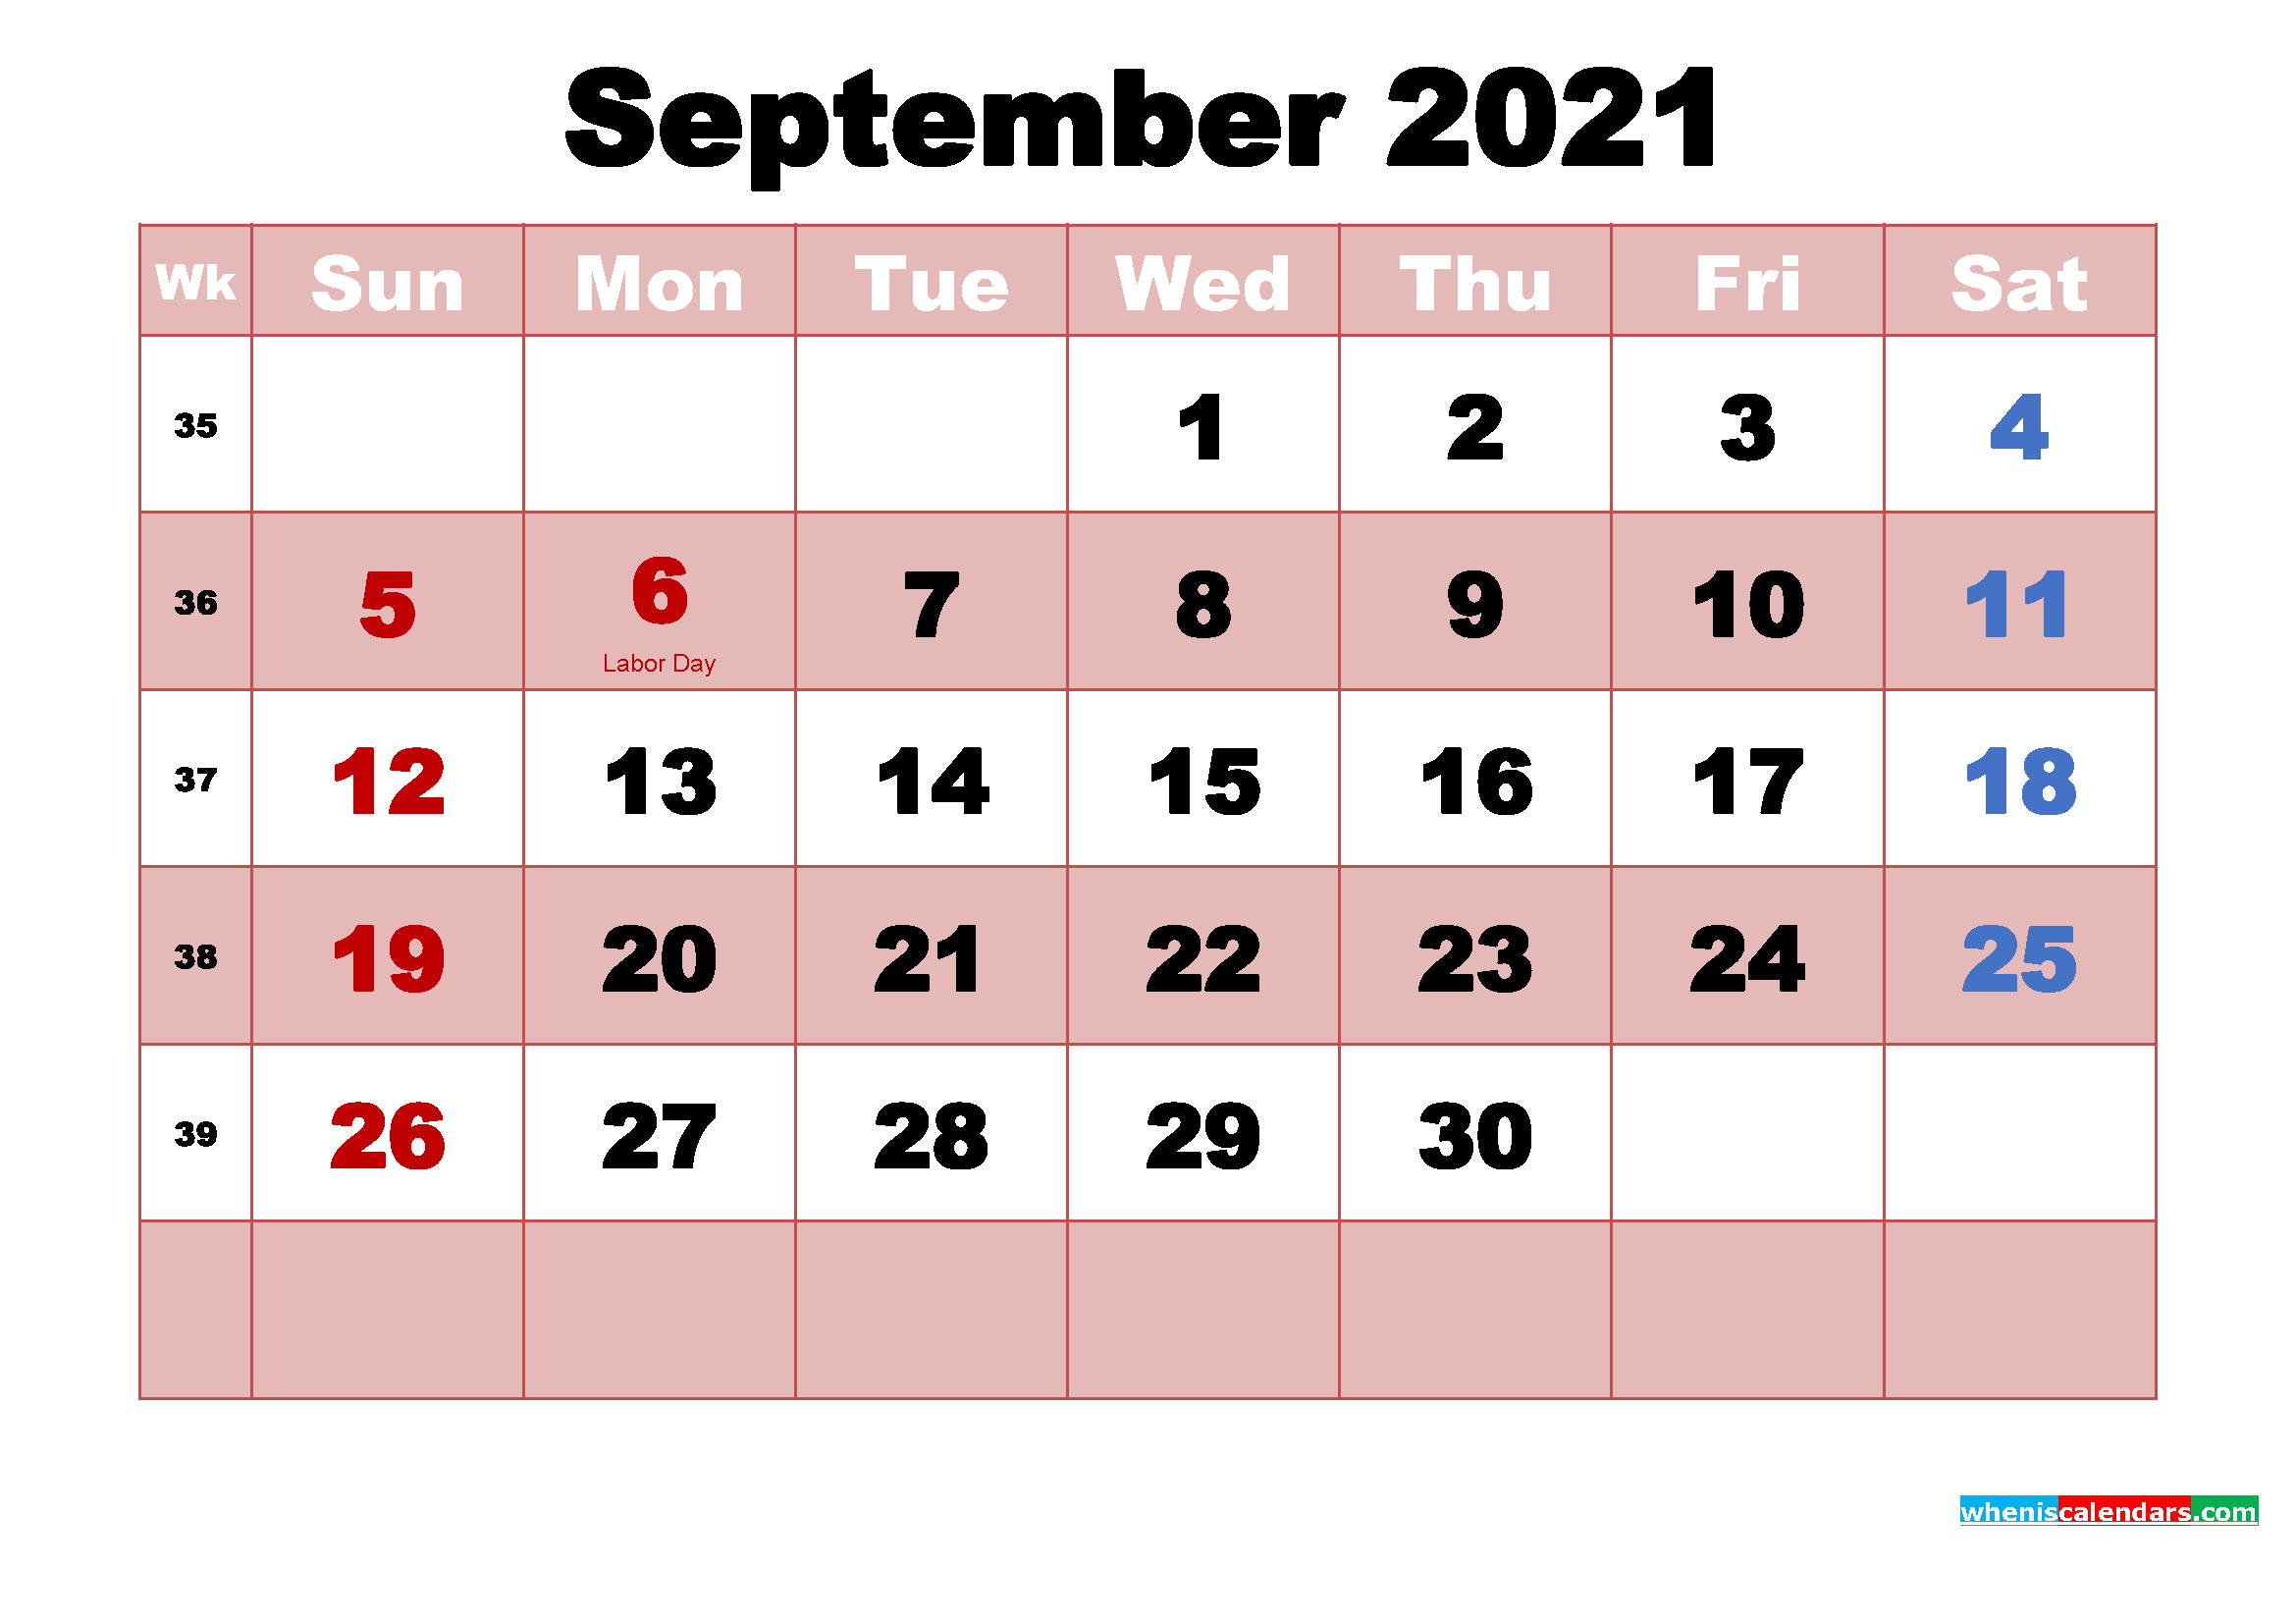 September 2021 Printable Monthly Calendar with Holidays